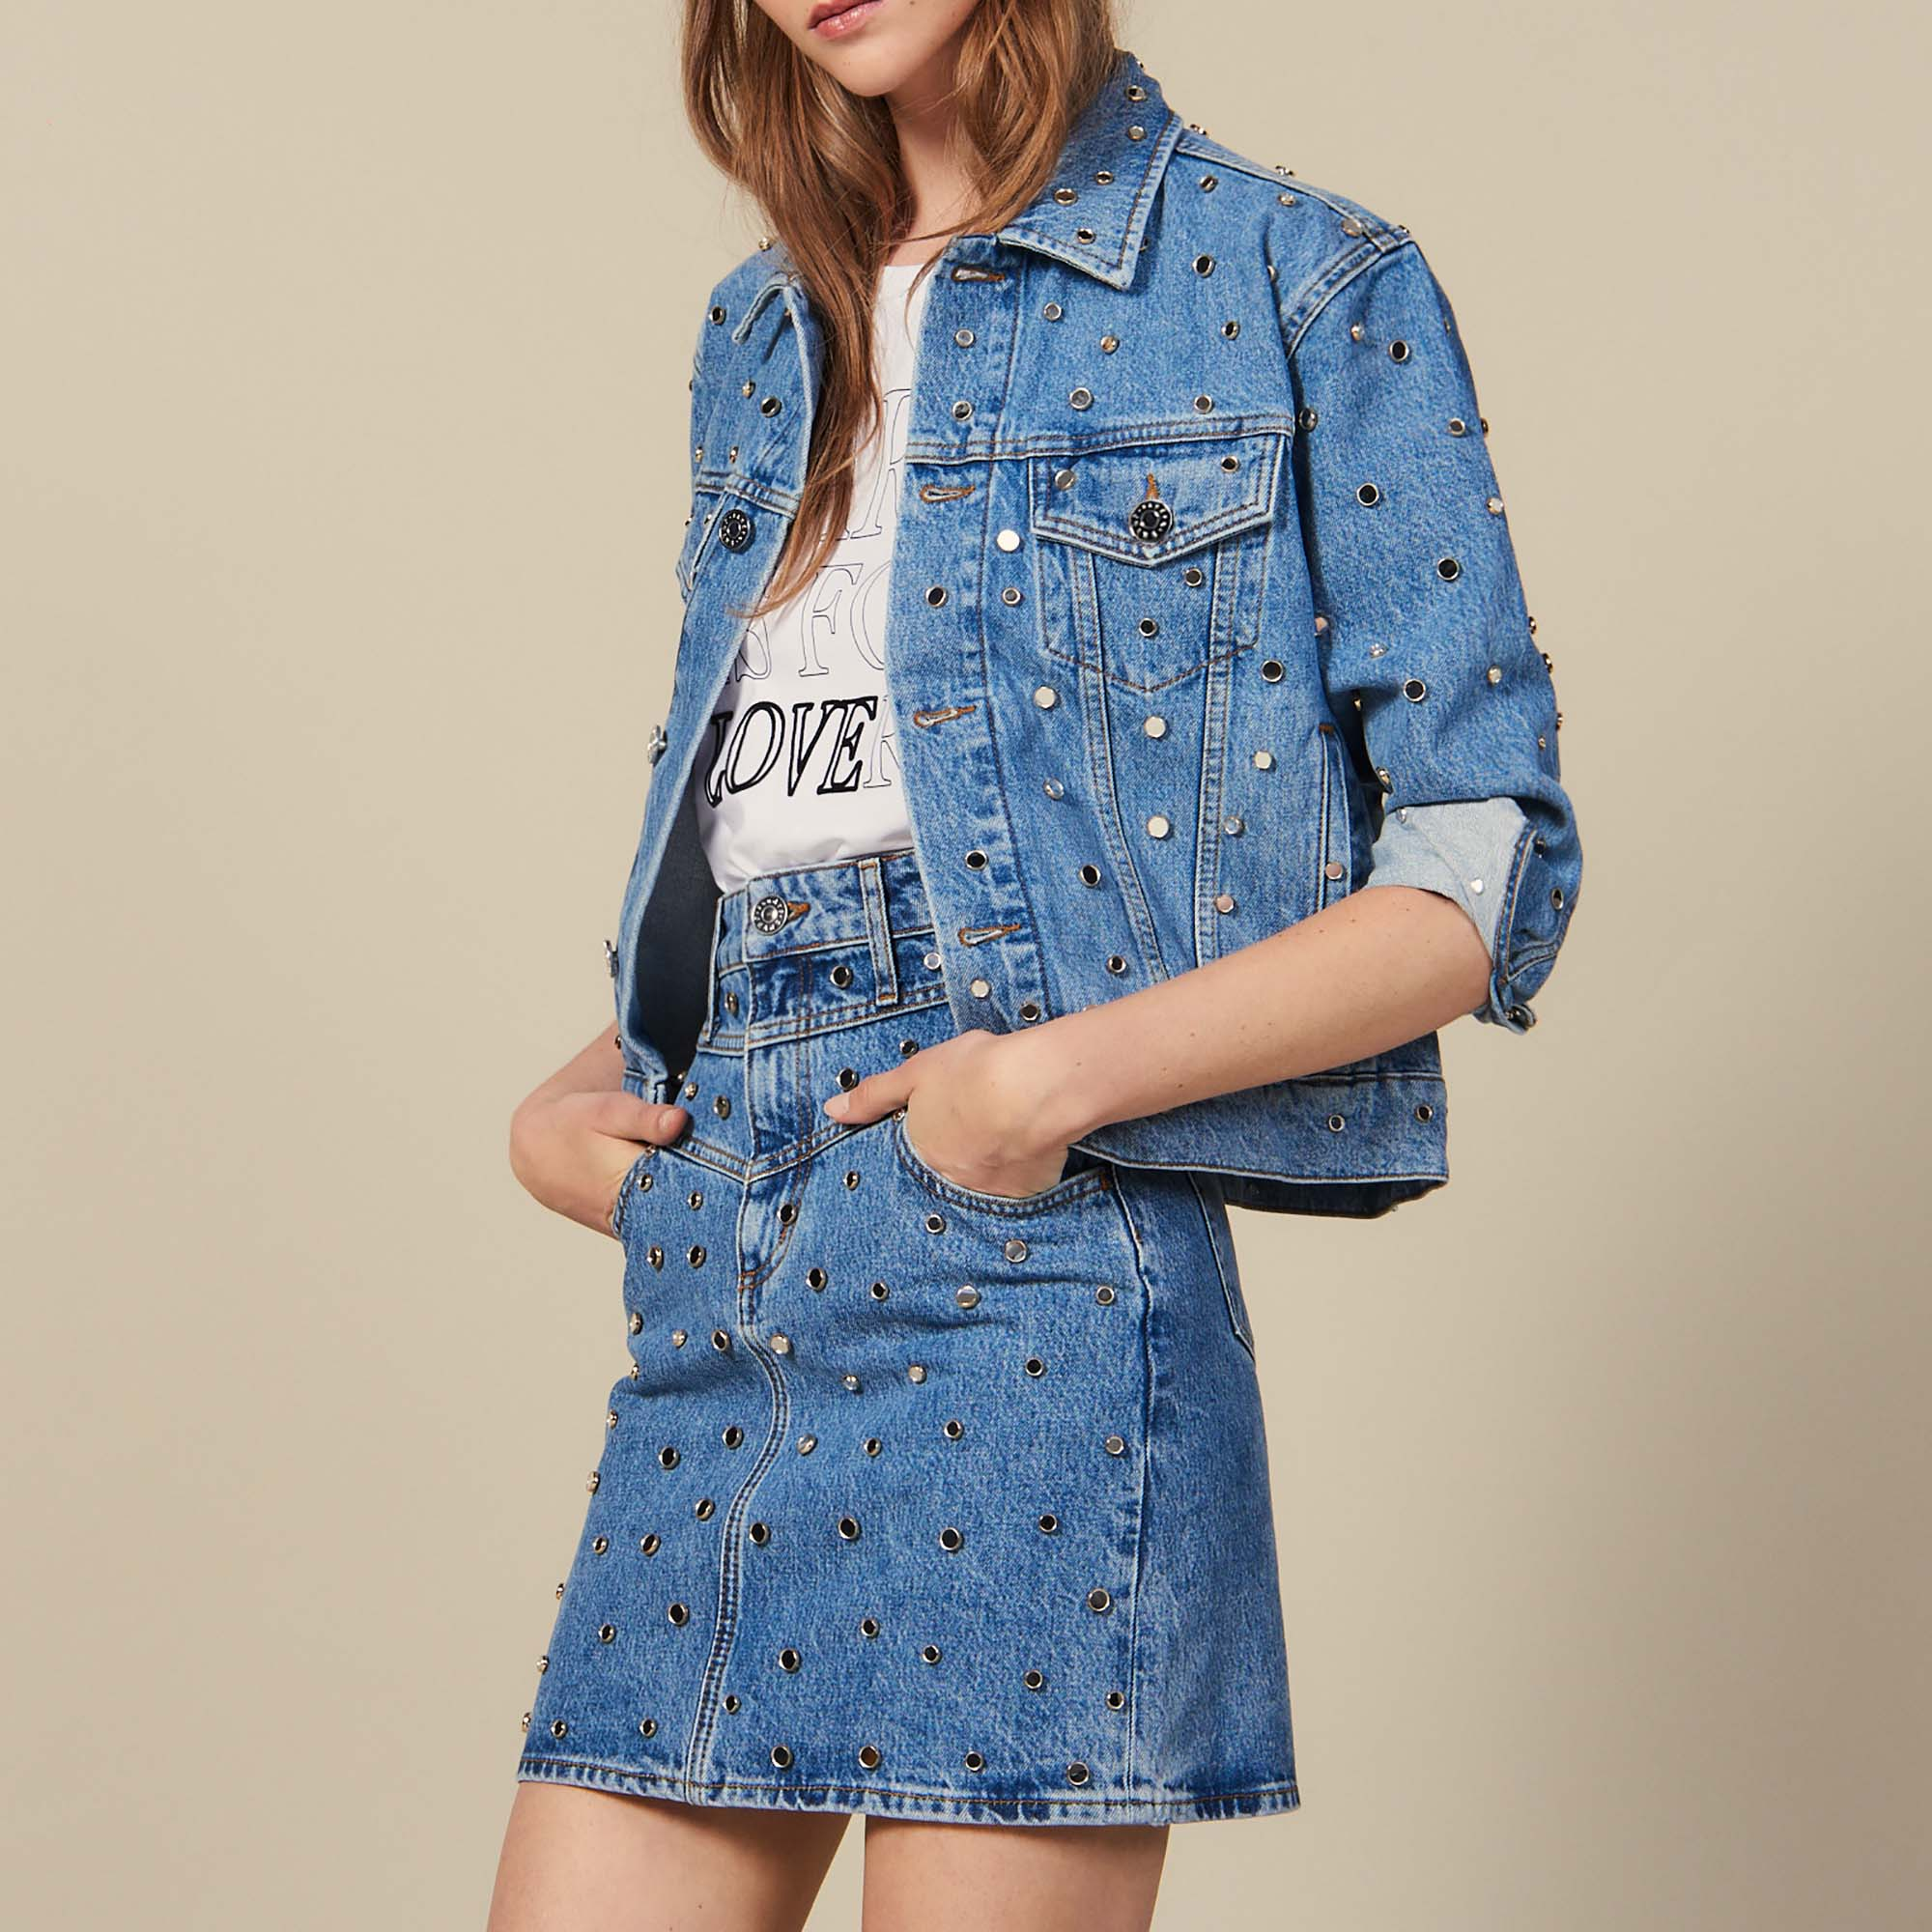 d7bed3ba7 Short Denim Skirt Trimmed With Studs : New Collection color Blue Jean ...